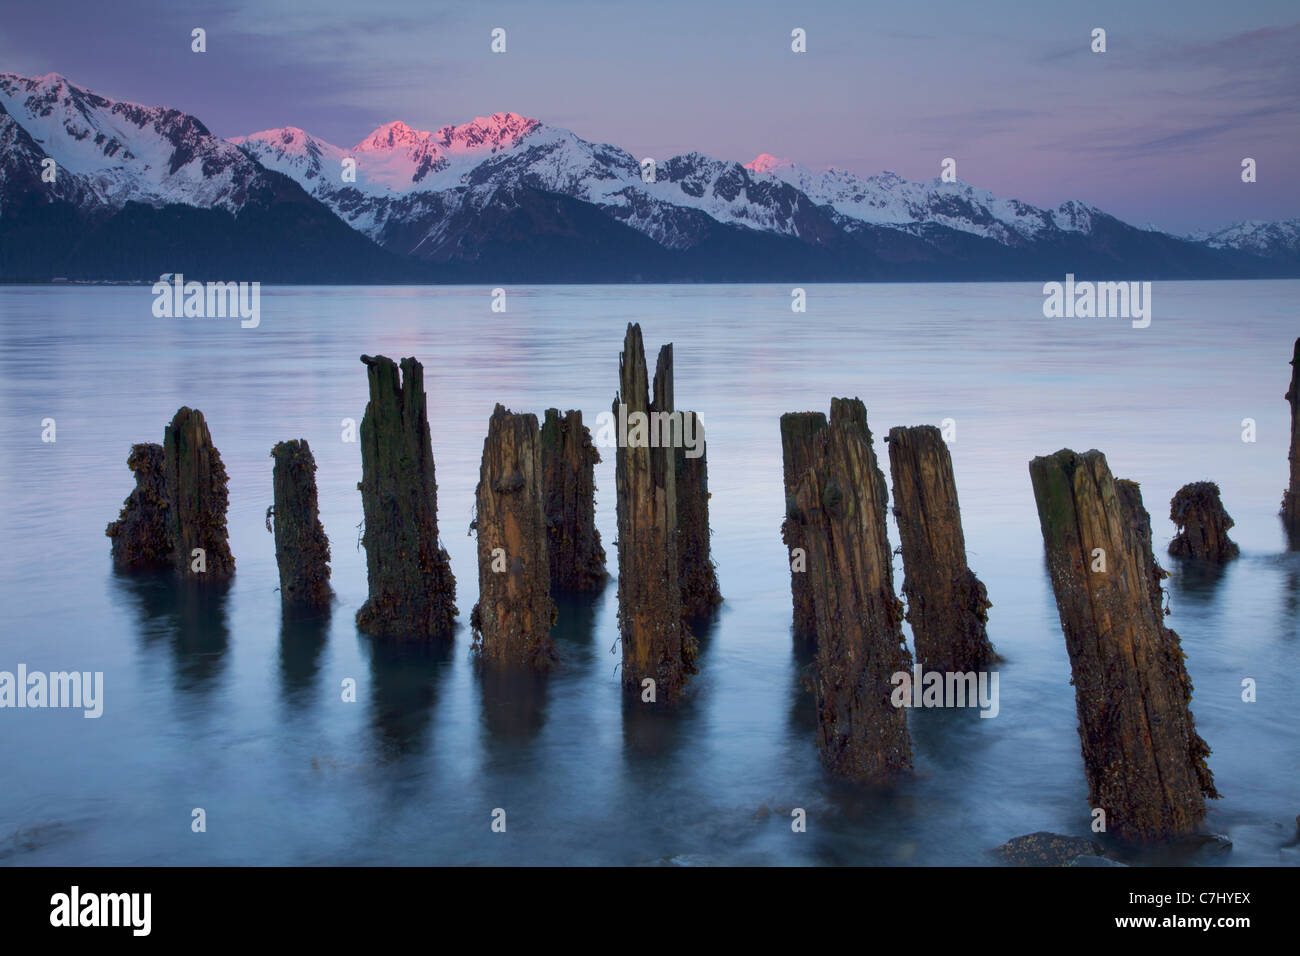 Resurrection Bay, Seward, Alaska. Imagen De Stock